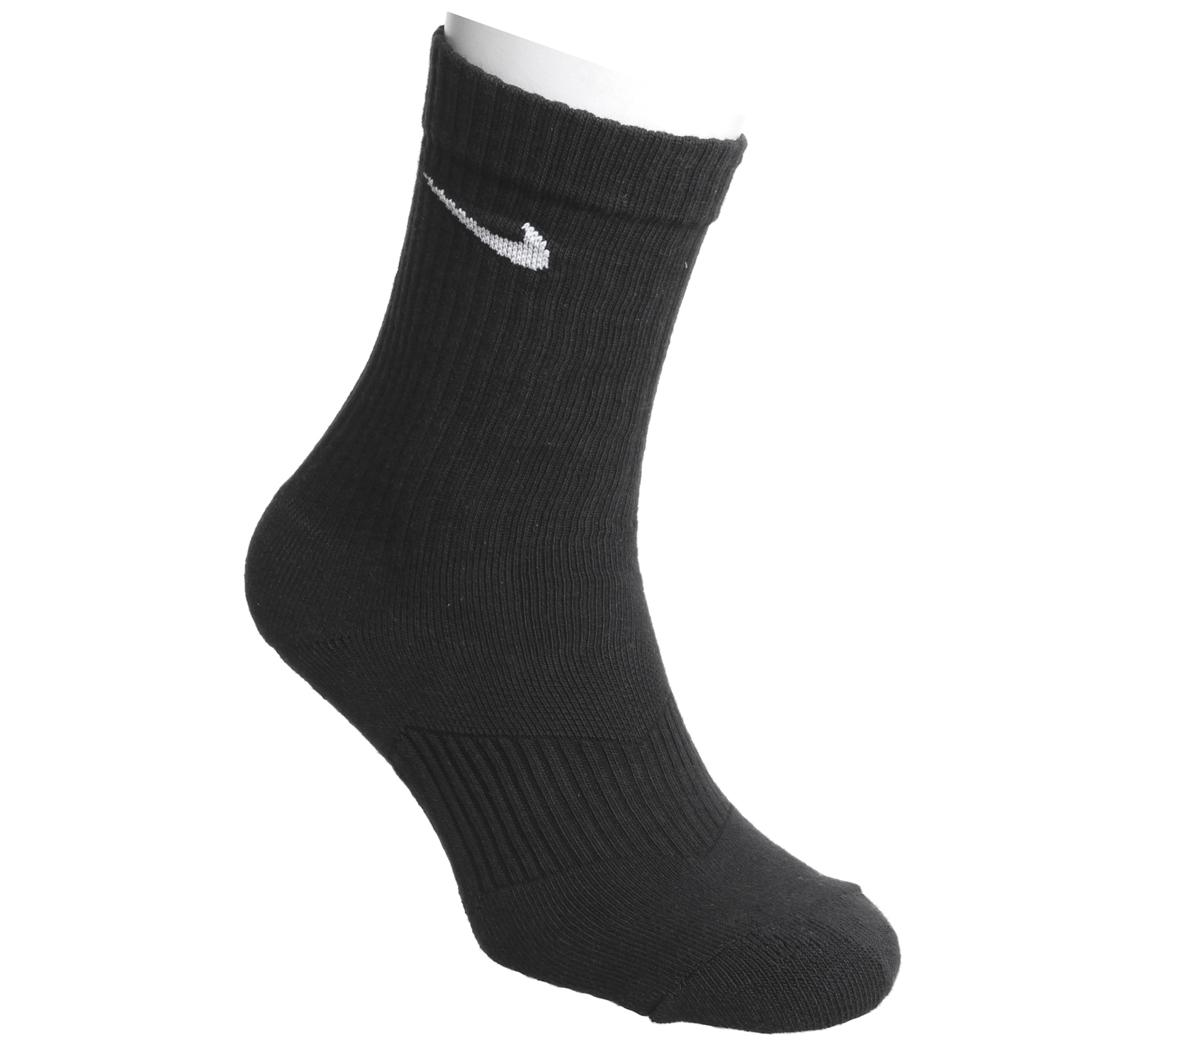 Dri-fit Cushion Crew 3 Pack Socks